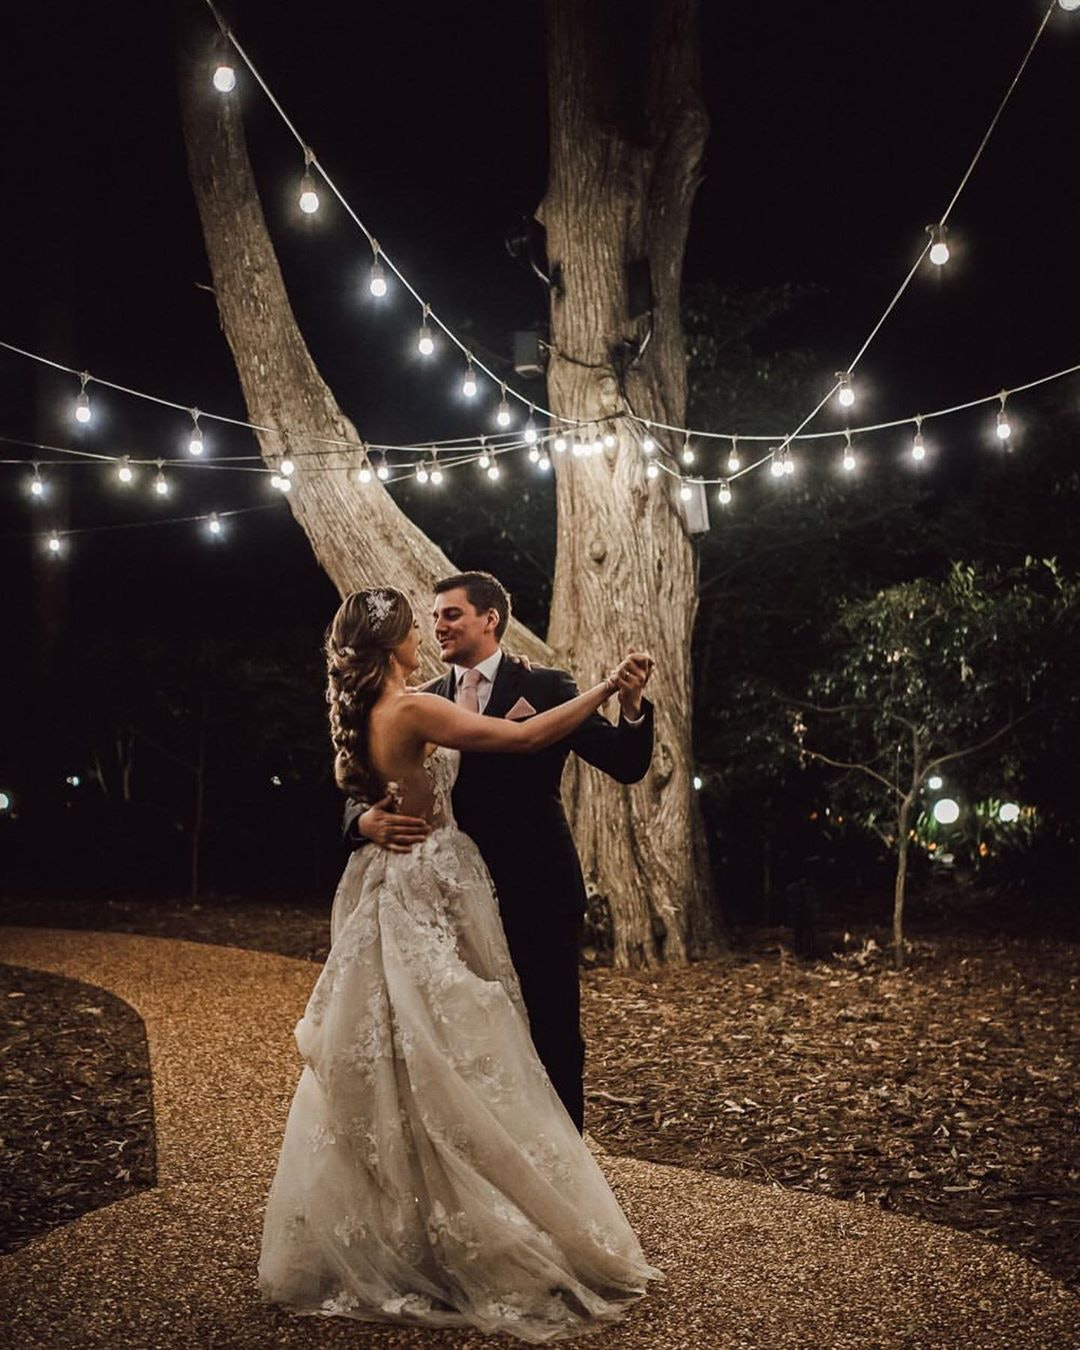 Bride and Groom dancing at night under festoon lights